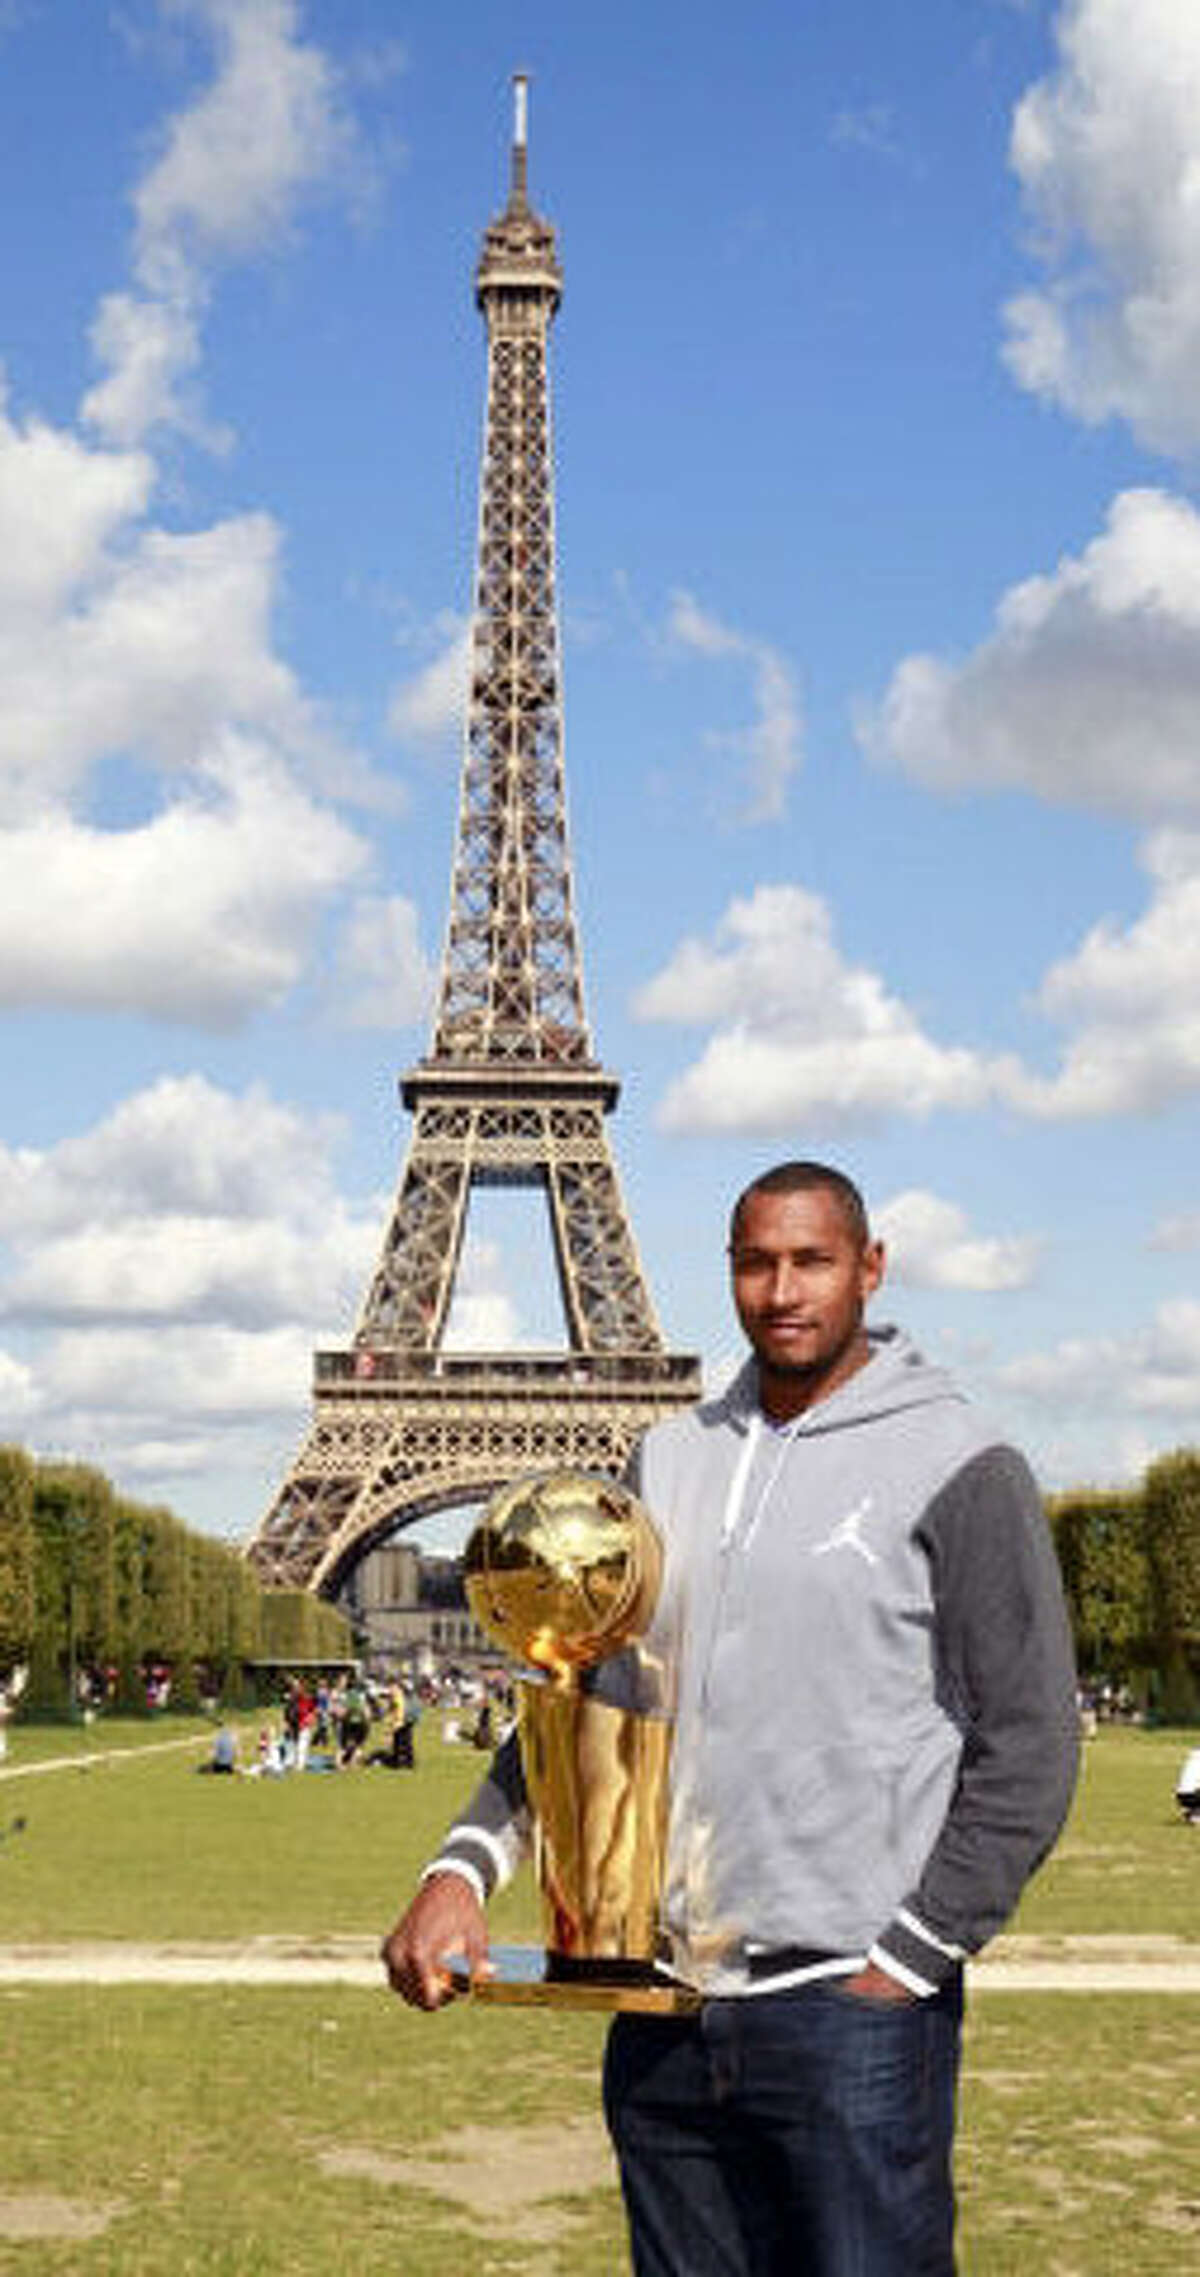 Spurs forward Boris Diaw took the Larry O'Brien Trophy to the Eiffel Tower in Paris